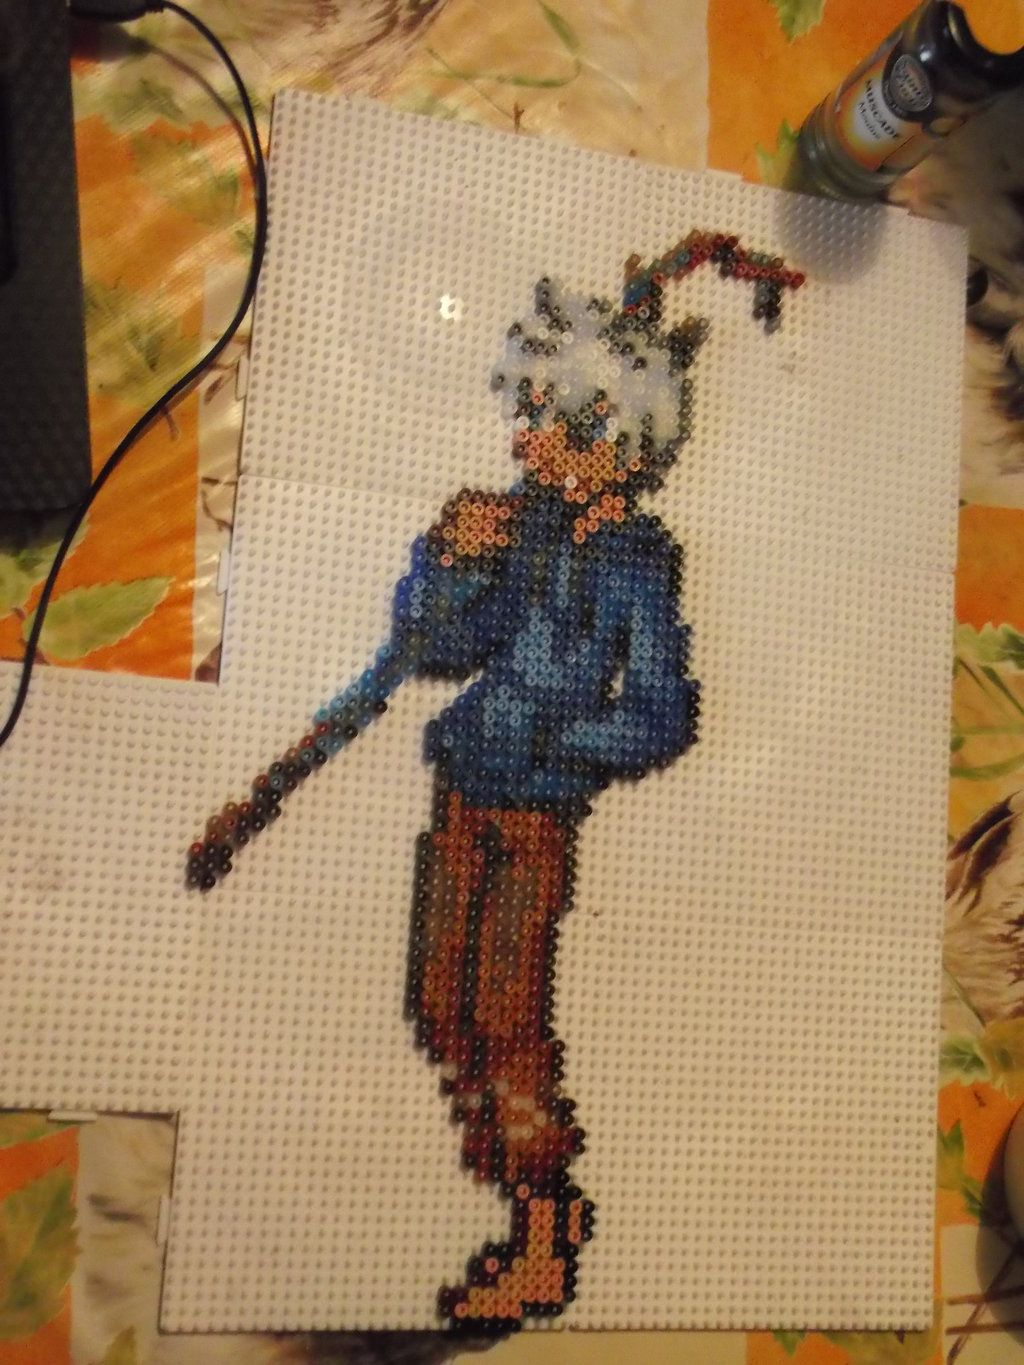 jack_frost_trainer_perler_beads_by_cimenord-d72tog0.jpg 1.024 ×1.365 pixel